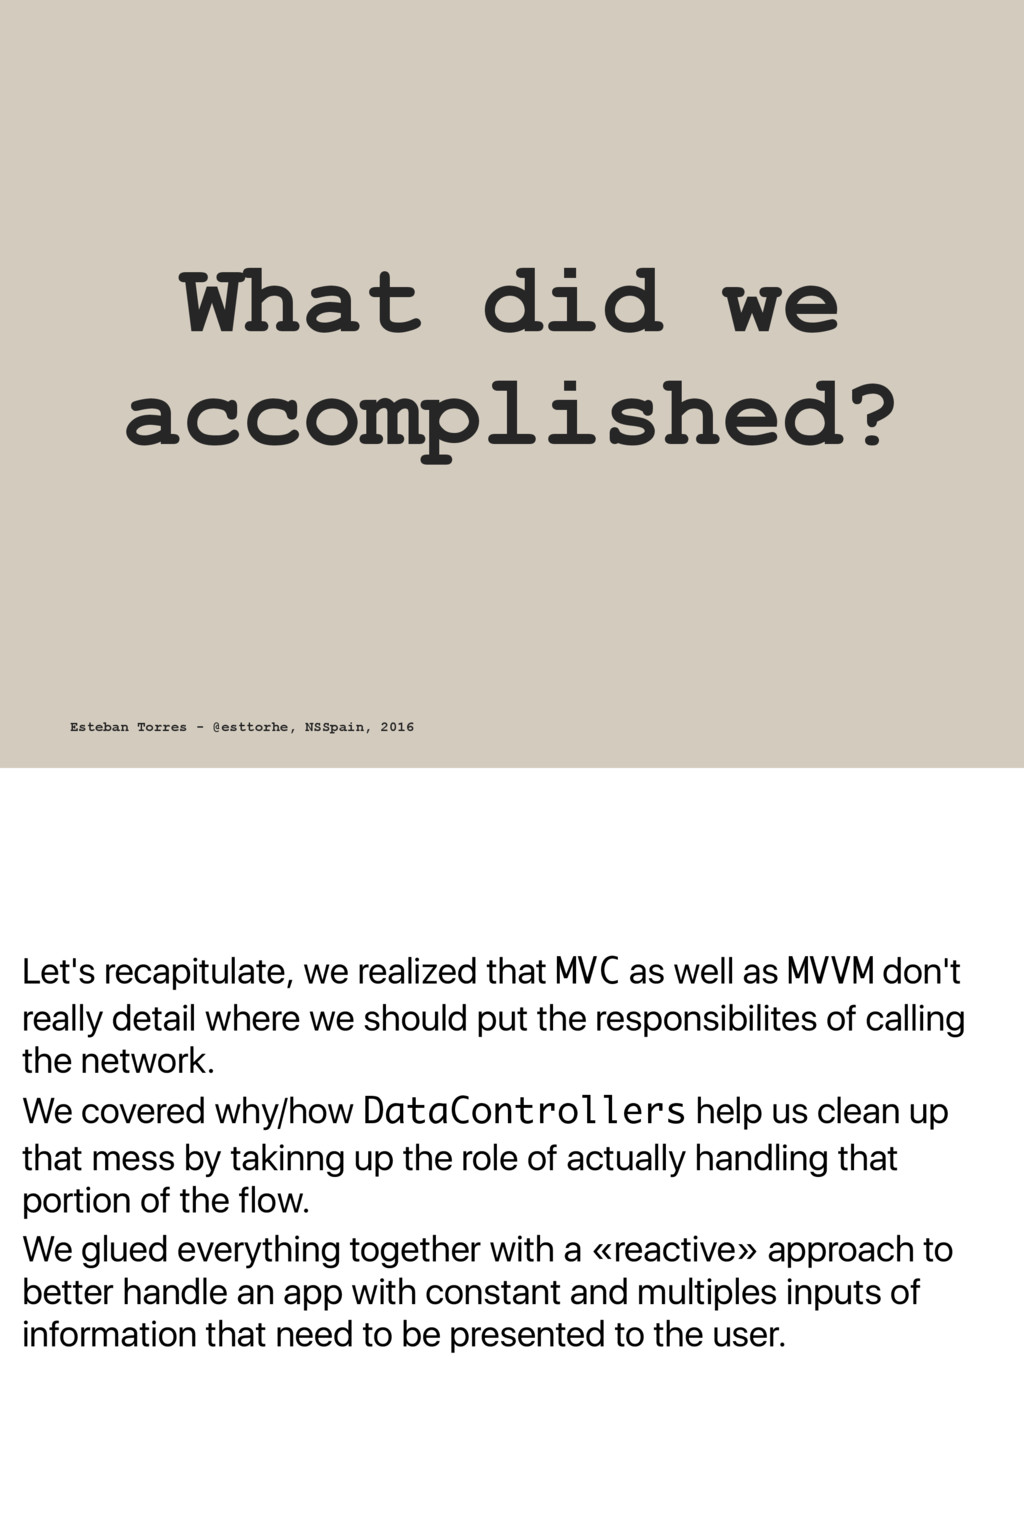 Let's recapitulate, we realized that MVC as wel...